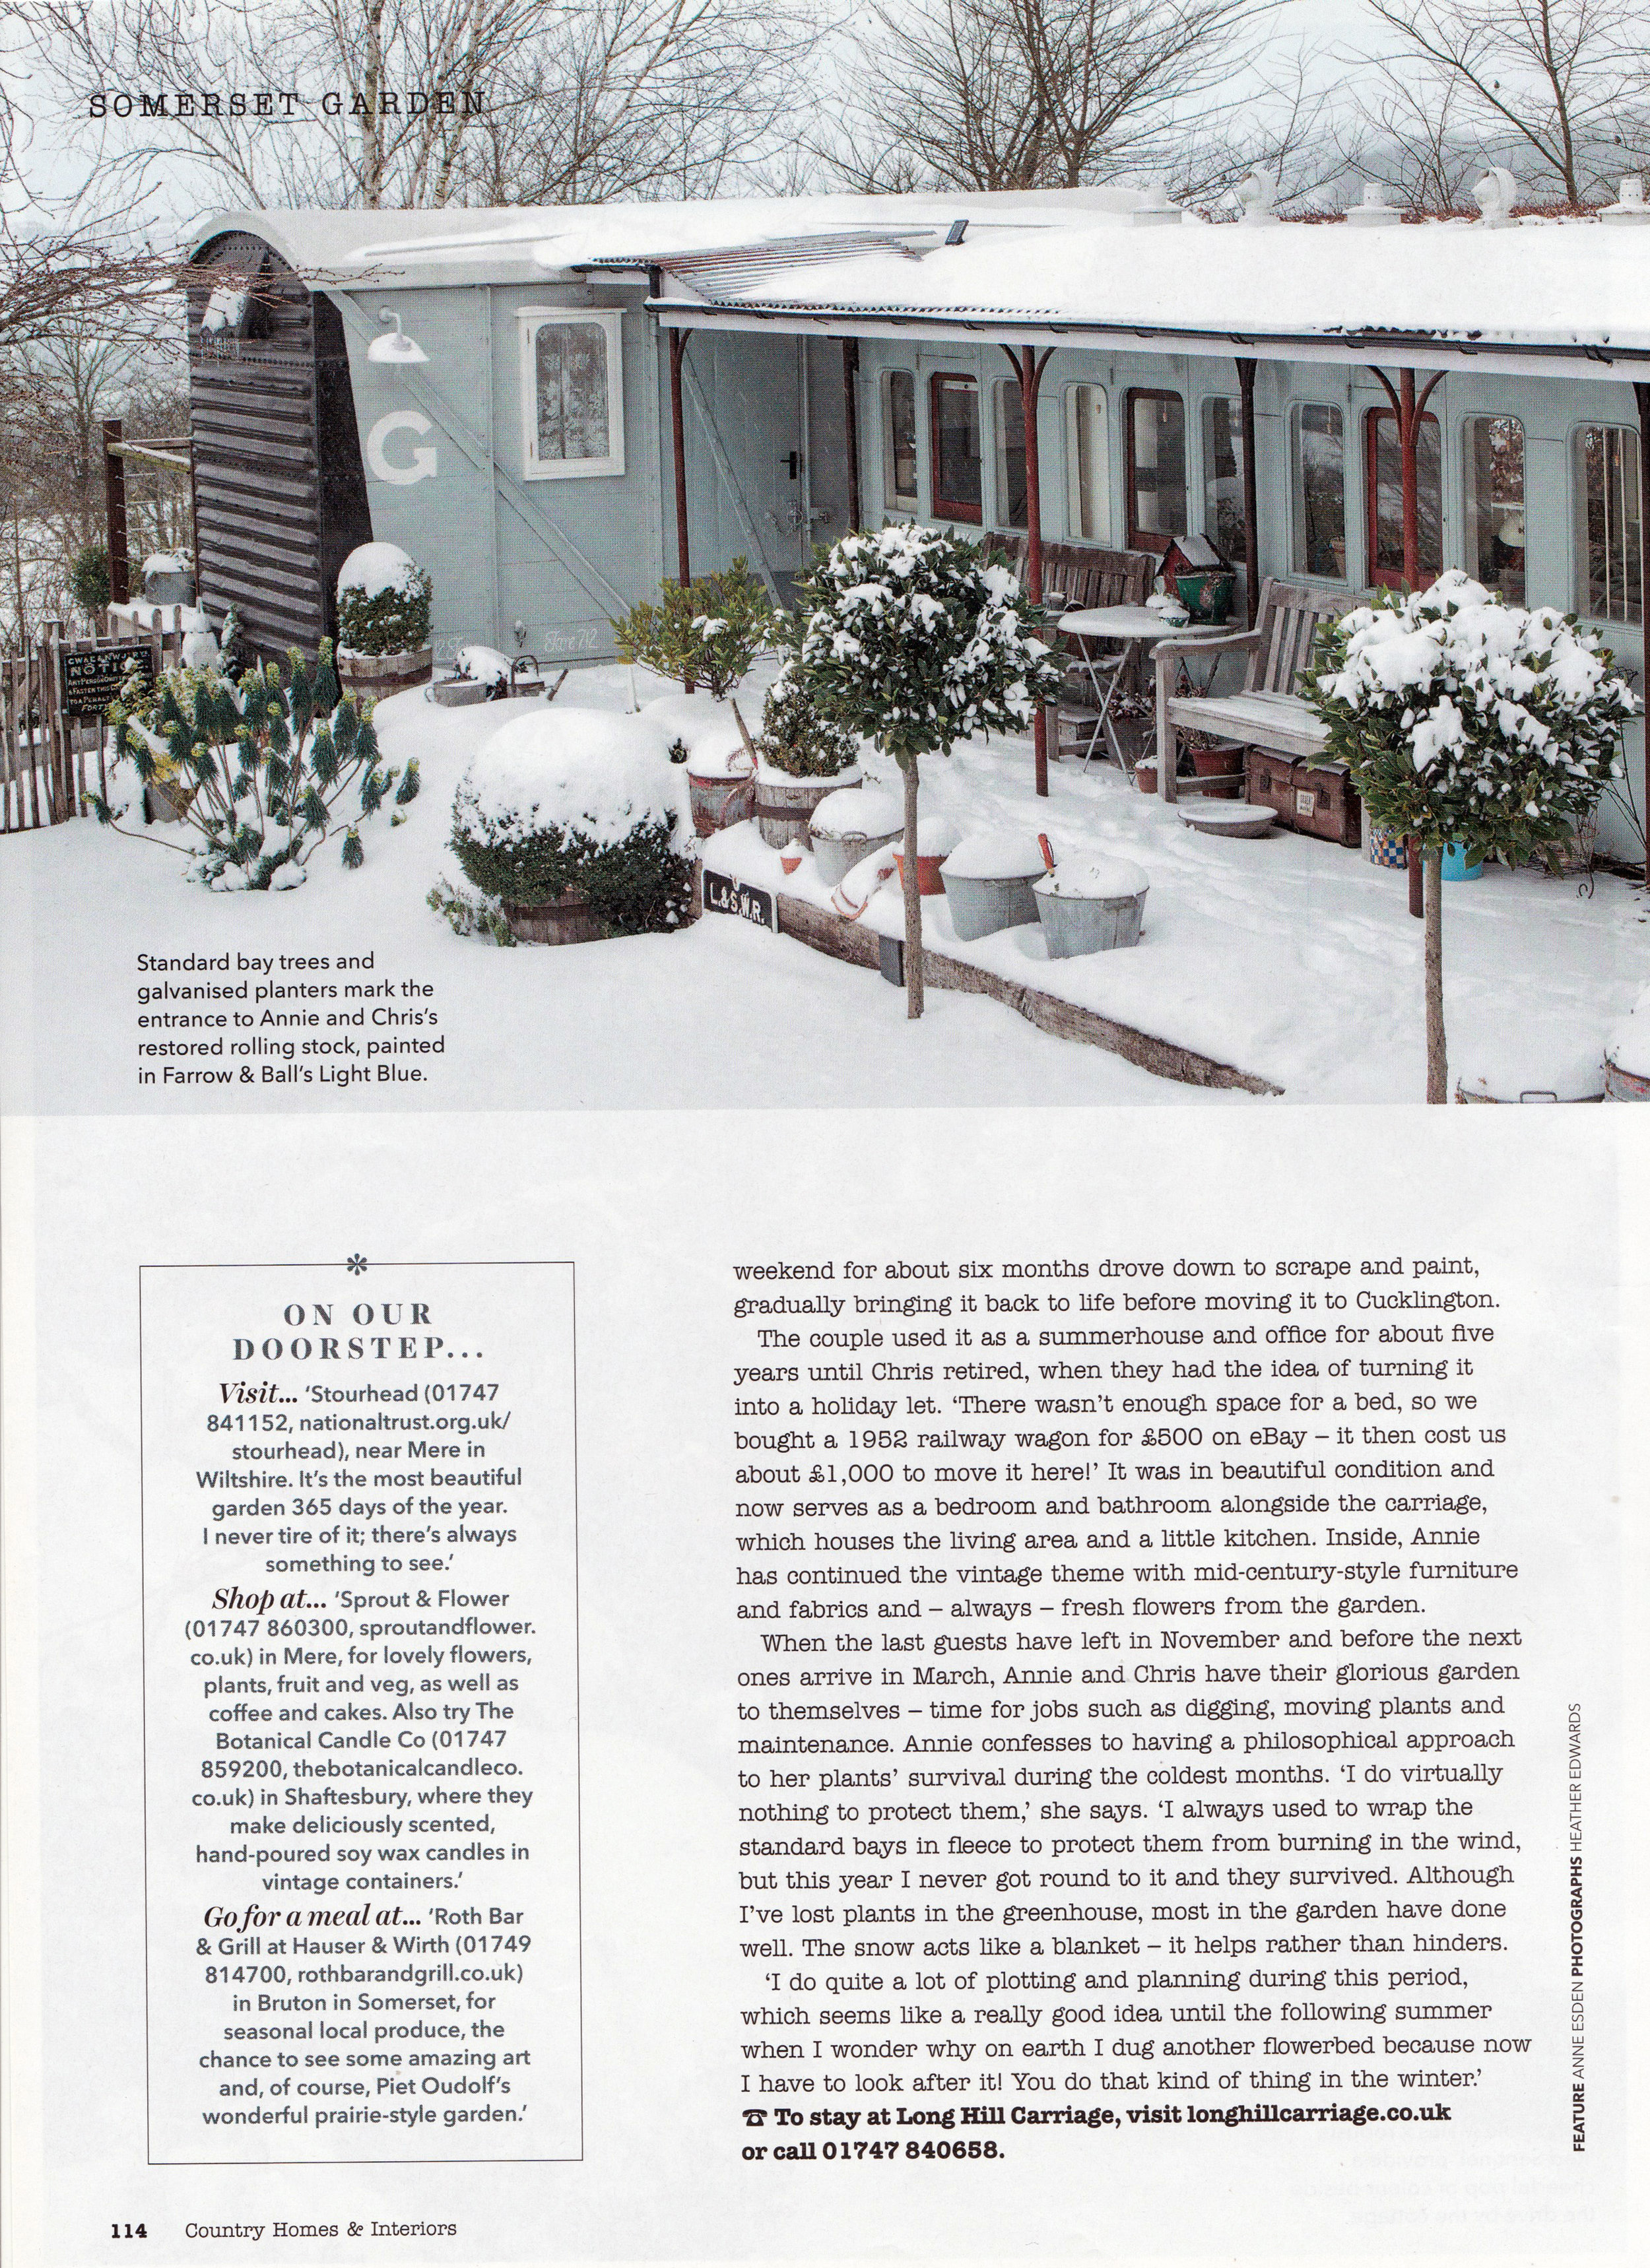 Country Living - A Winter's Tale - Jan 2019 6.jpg